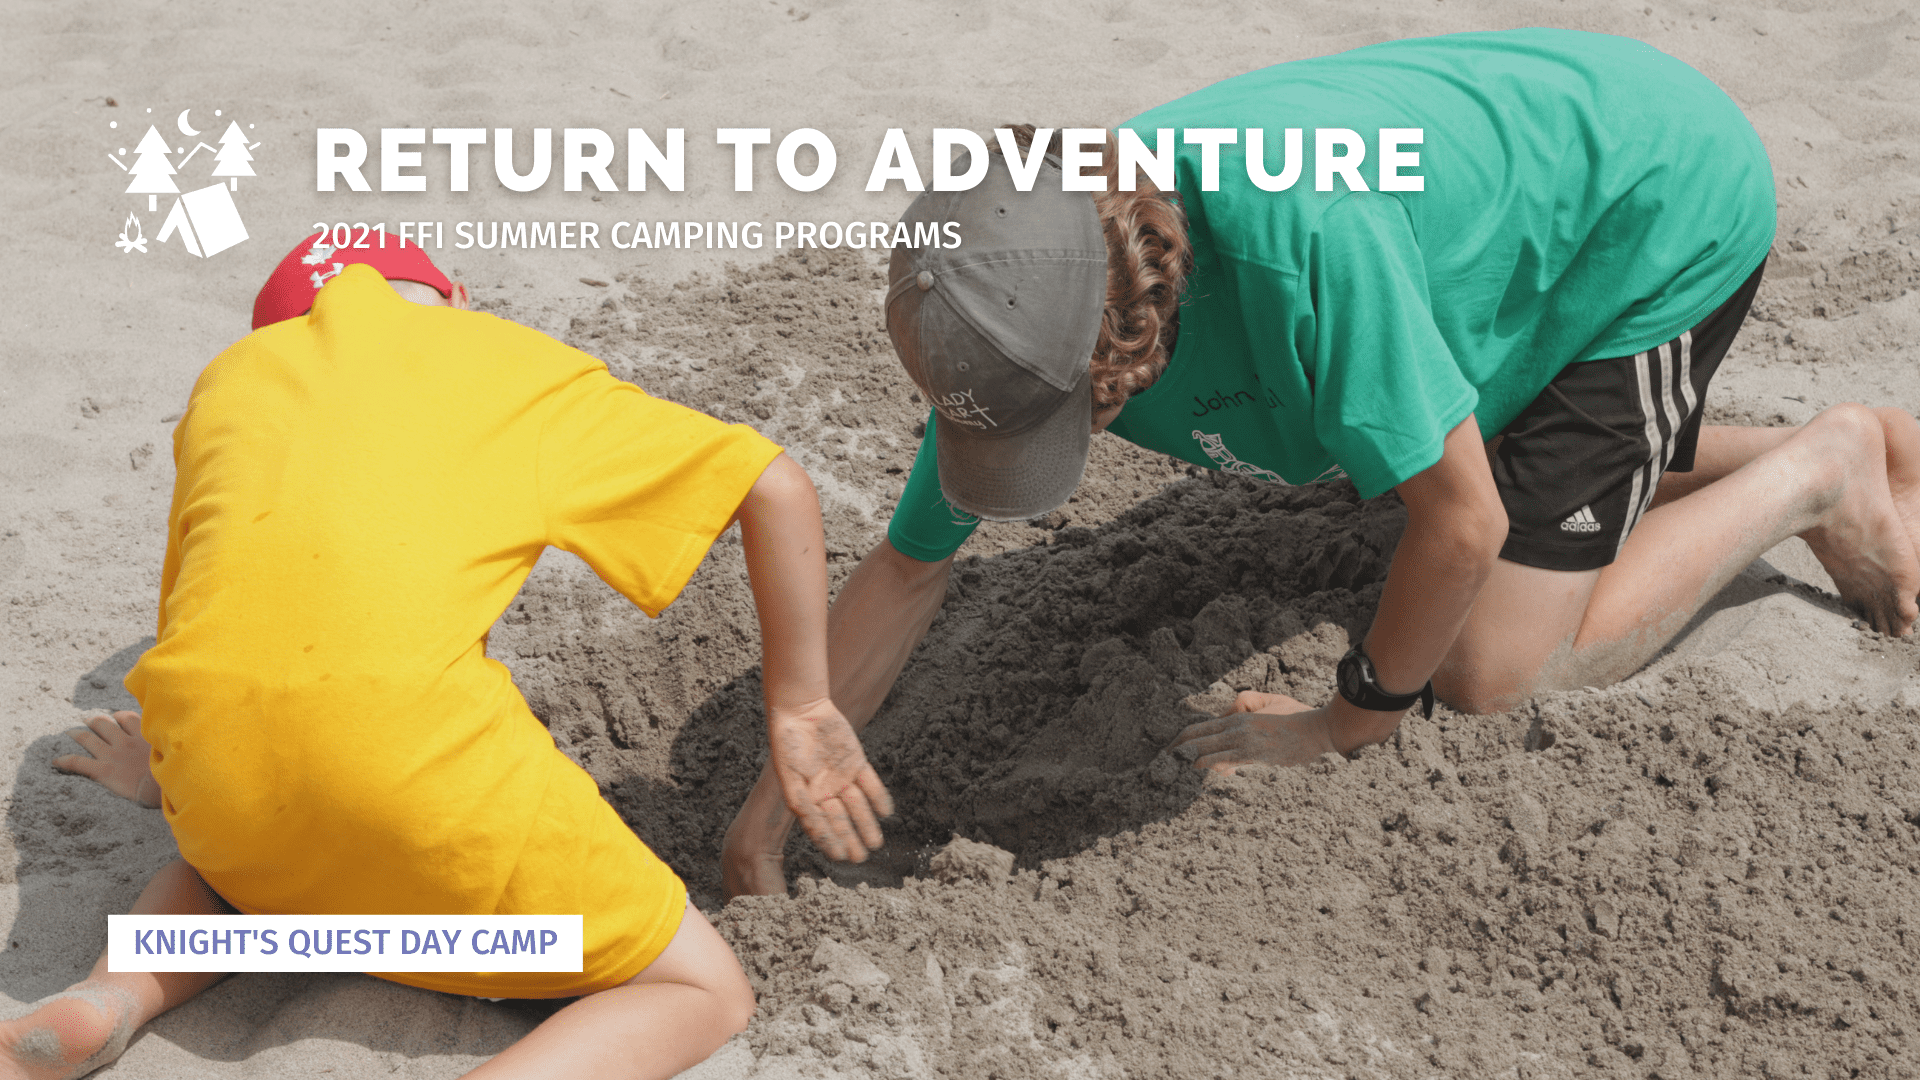 Knights Quest Day Camp